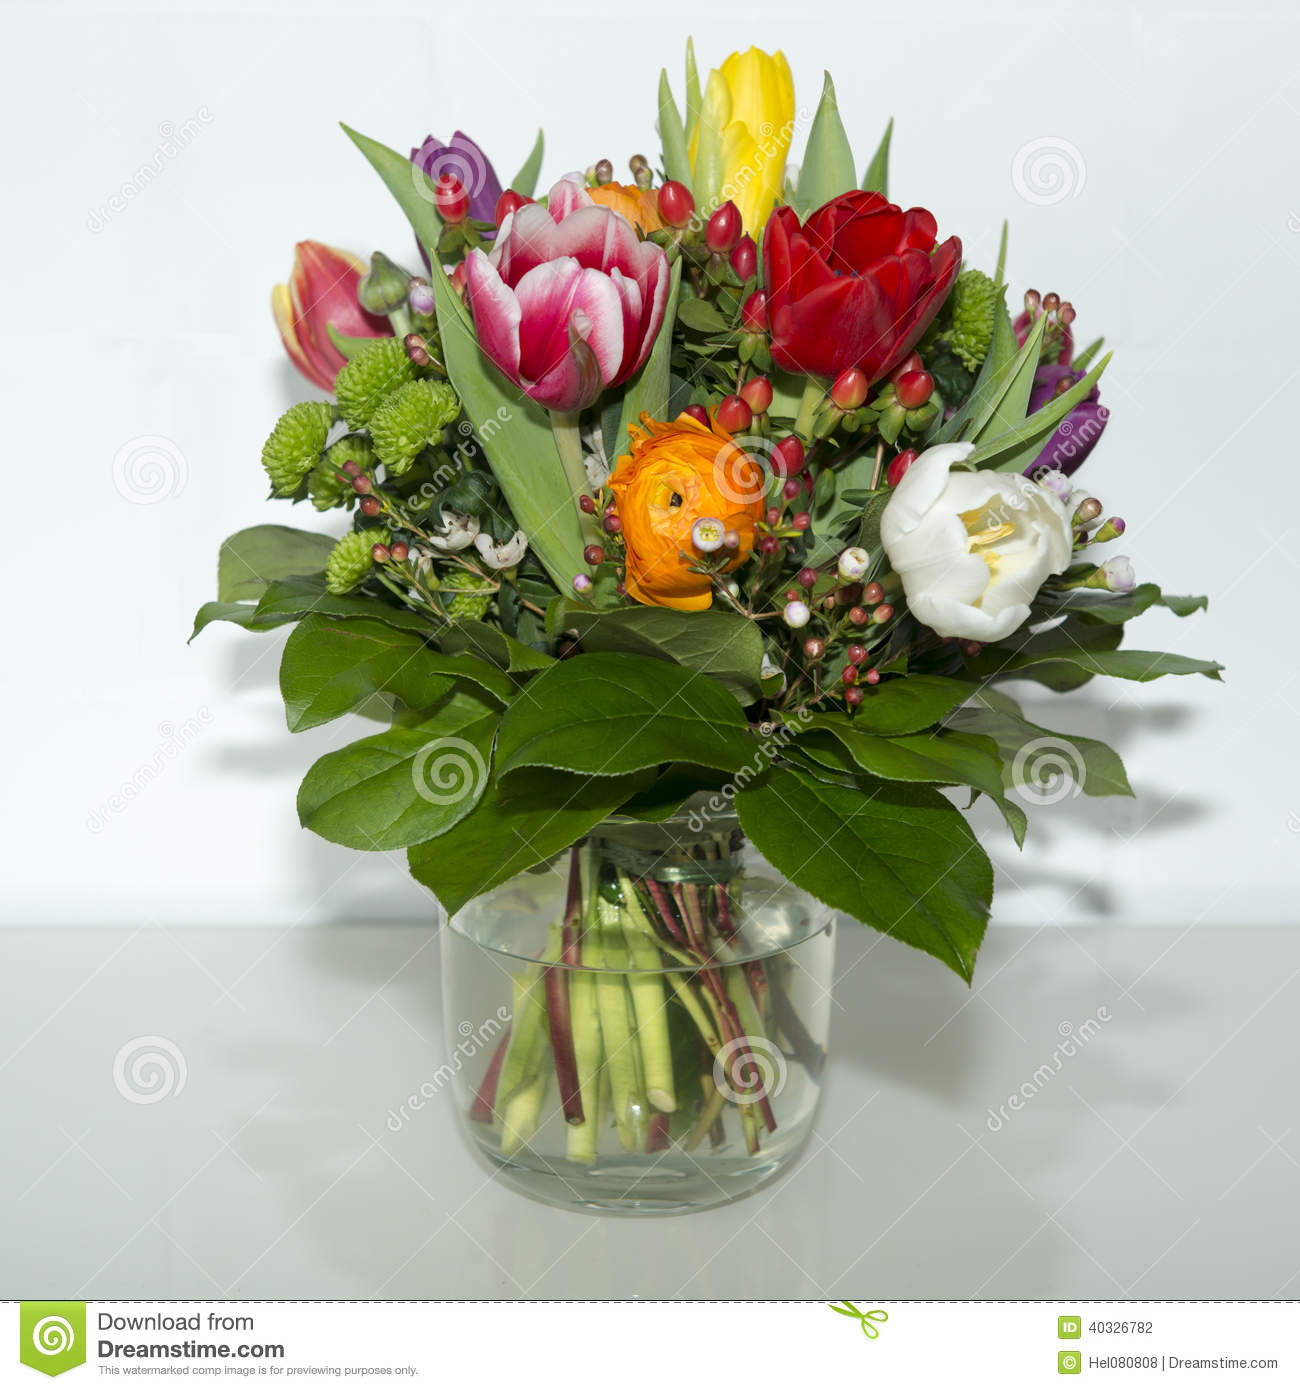 Spring Flowers In Vase Stock Photo Image Of Flowers 40326782